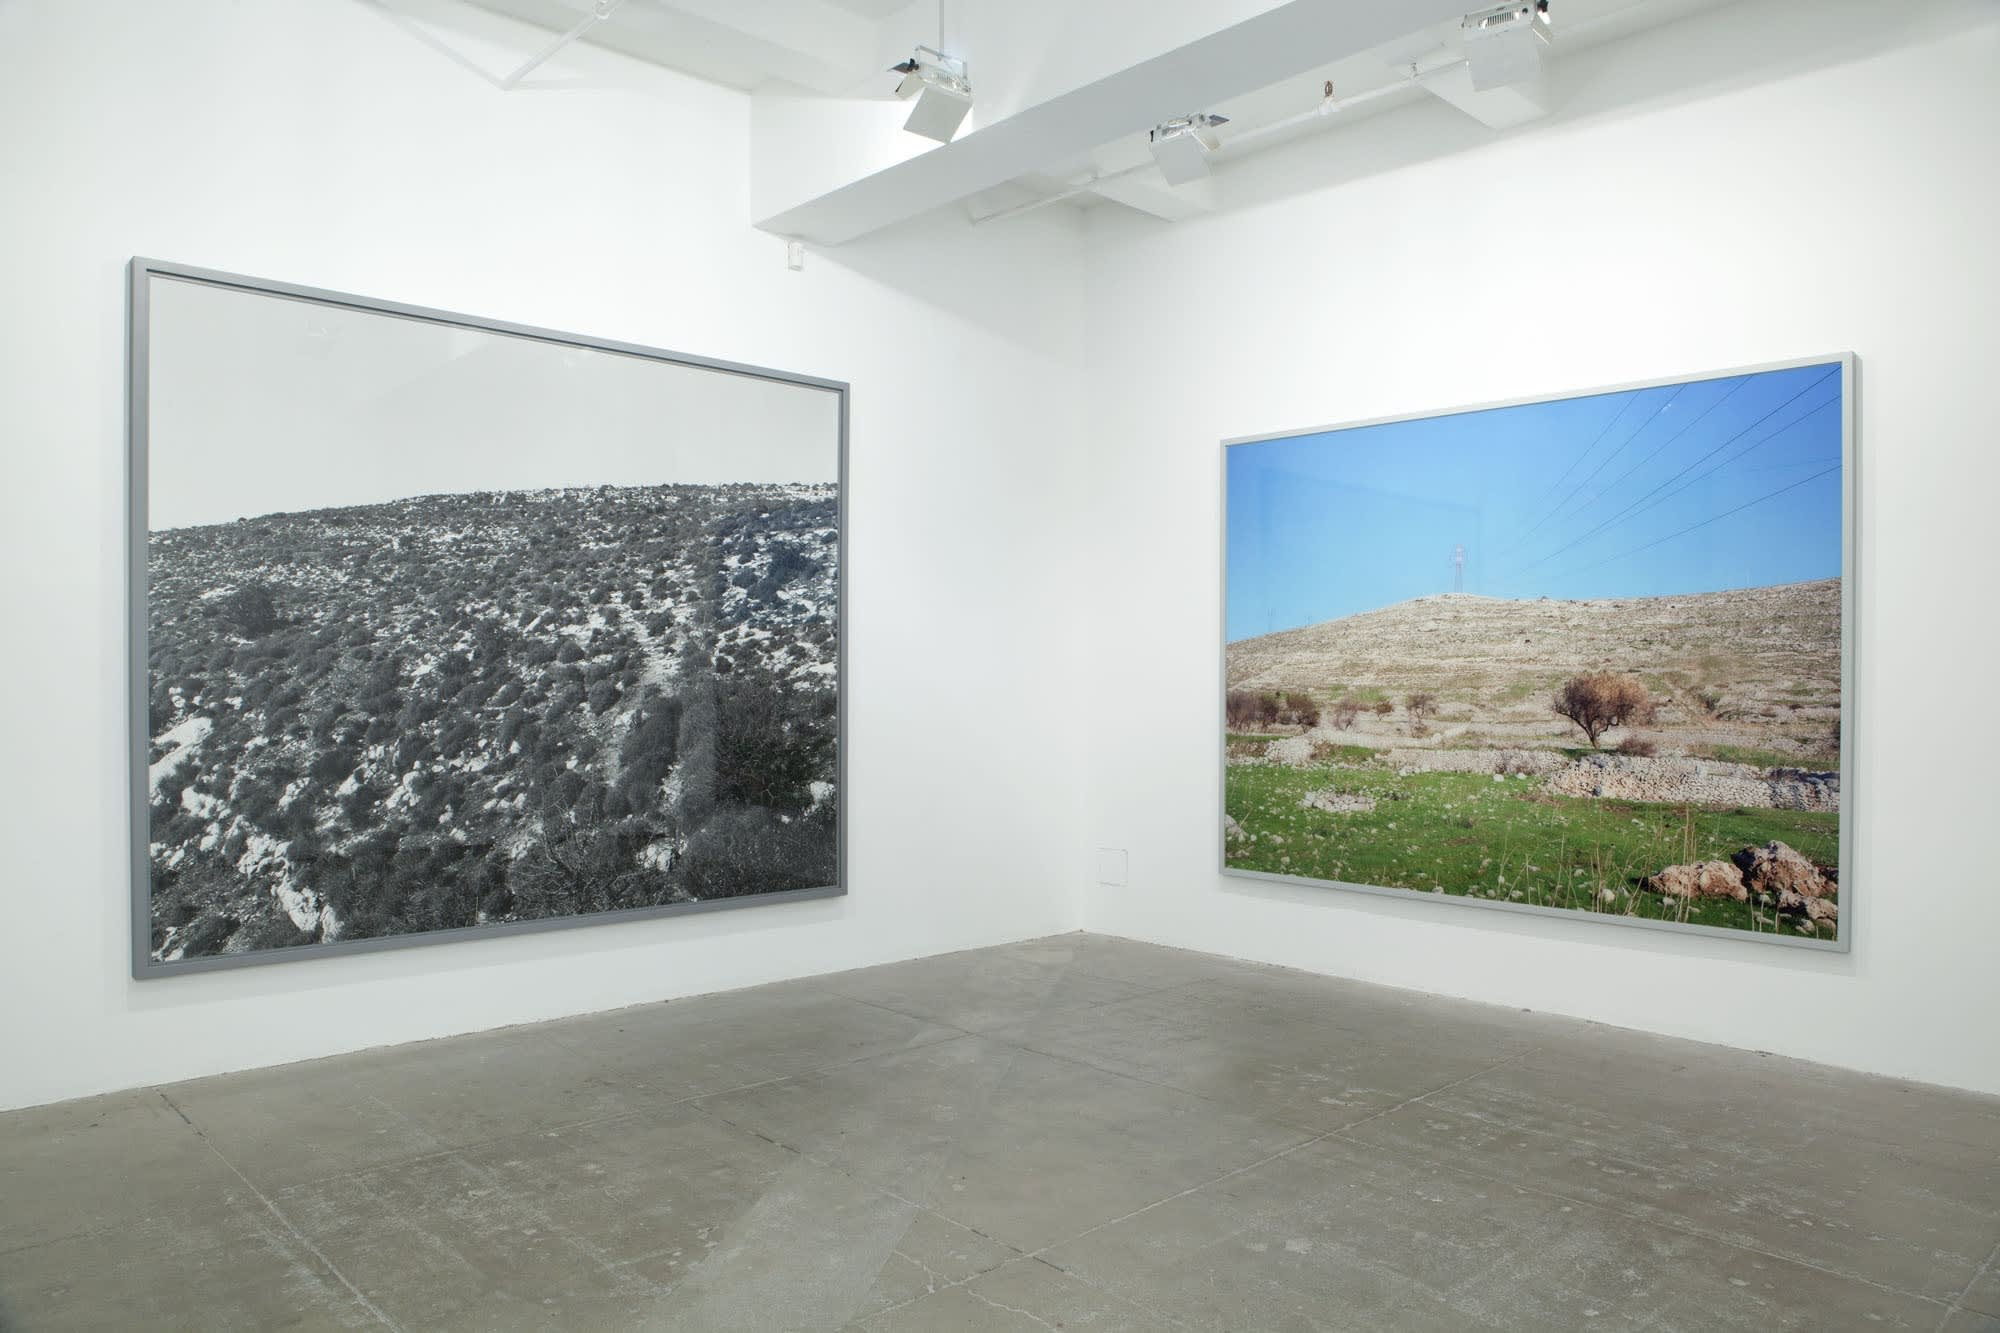 A black and white photograph of a hill covered in grass and shrubs hangs next to a colorful photograph of a barren hill behind a patch of grass.